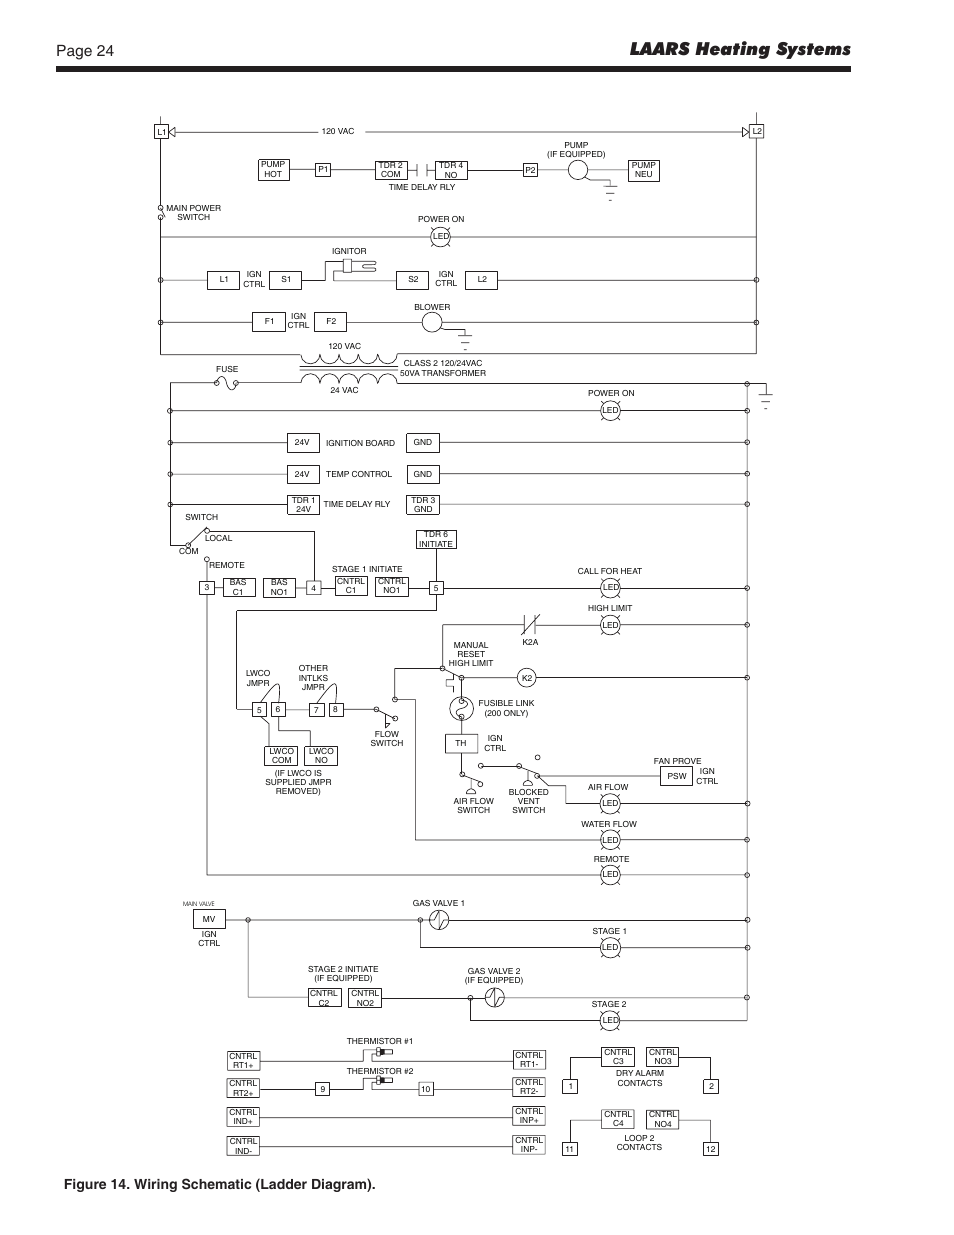 hight resolution of laars heating systems figure 14 wiring schematic ladder diagram laars pennant